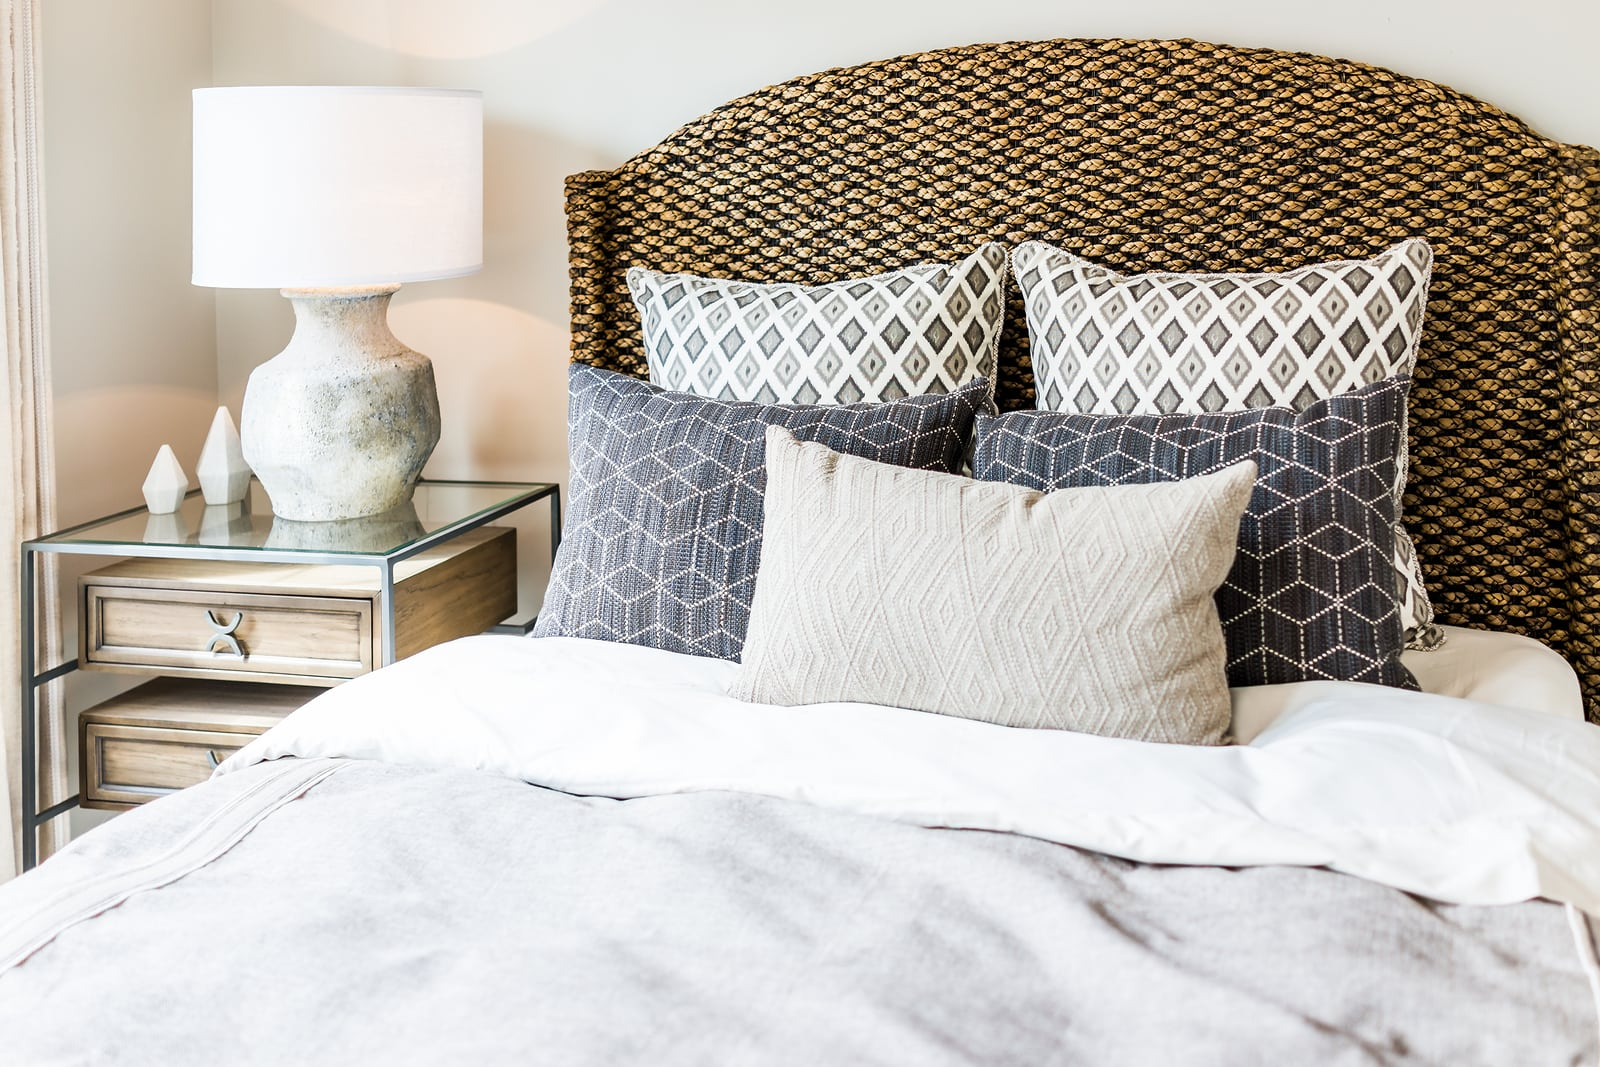 Closeup of new bed comforter with decorative pillows headboard in bedroom in staging model home house or apartment